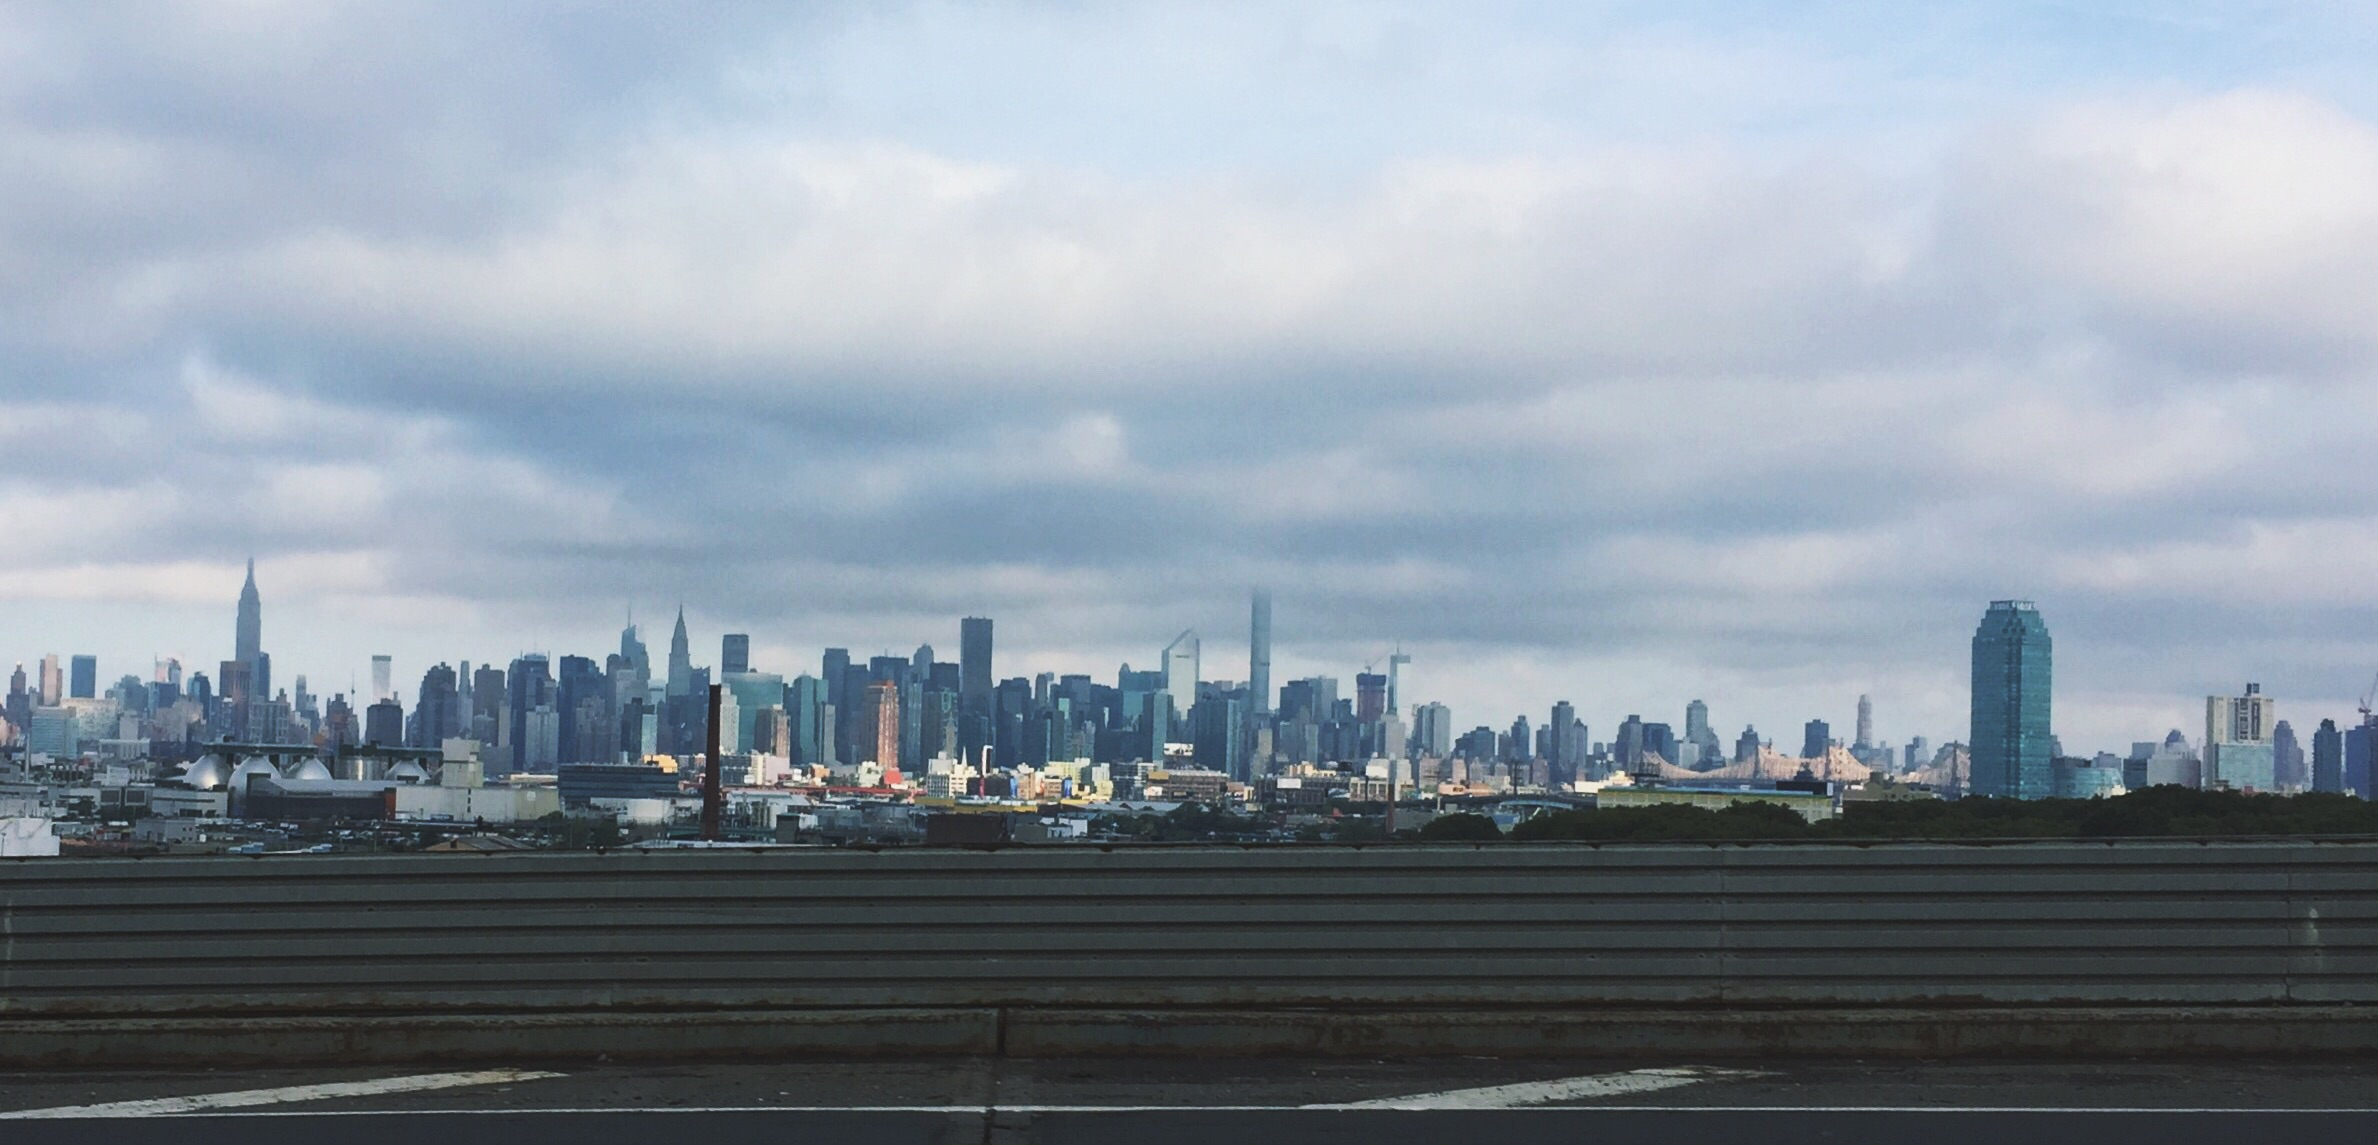 Until next time NYC!